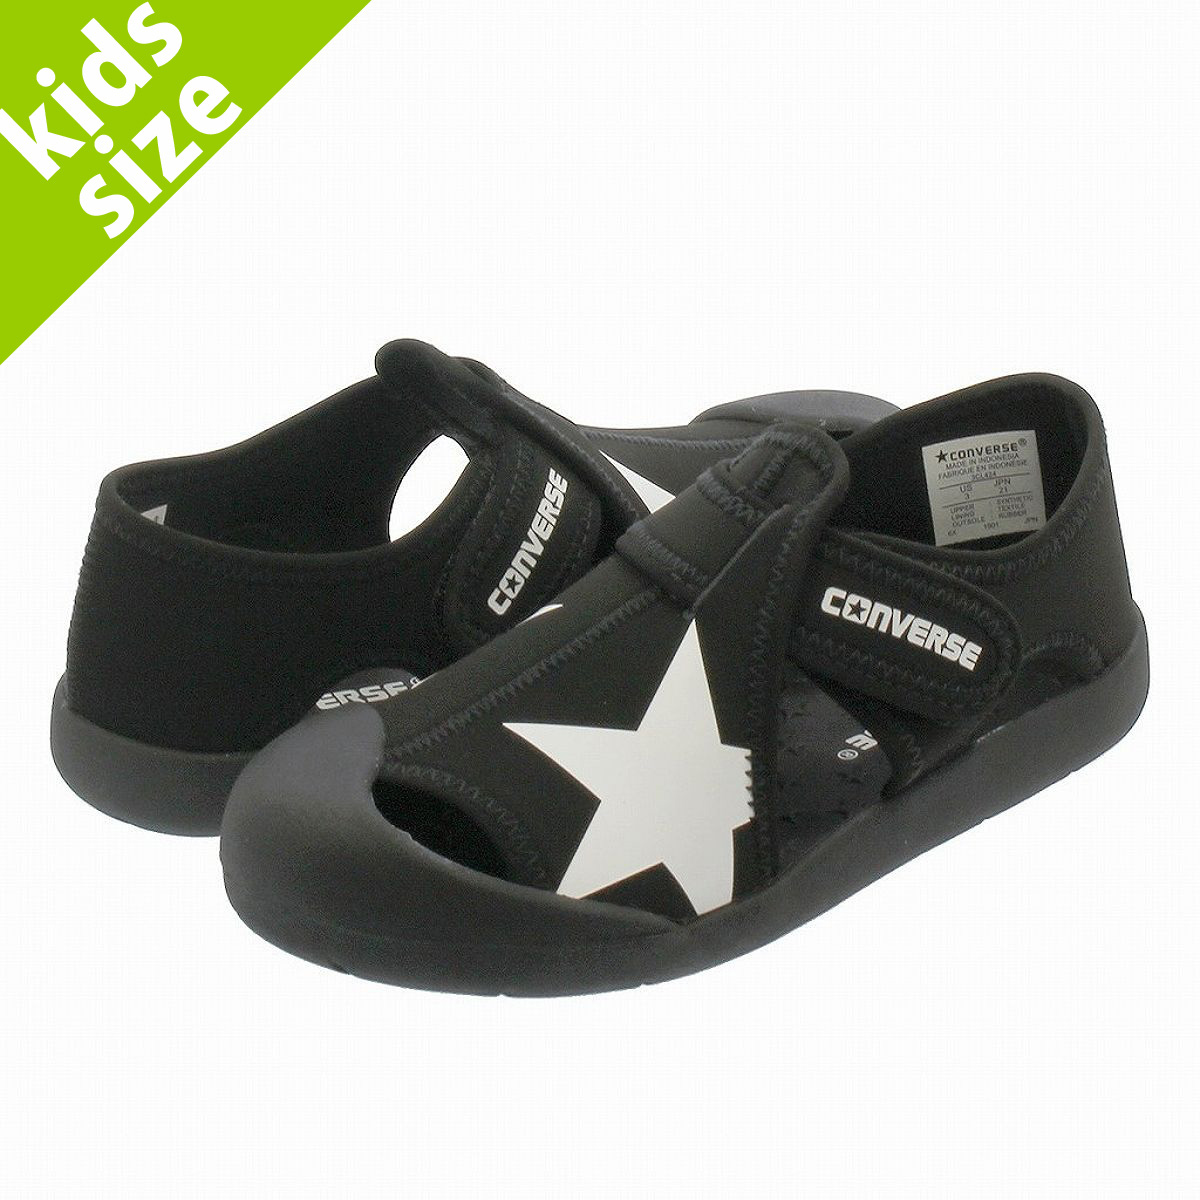 CONVERSE KID'S CVSTAR SANDAL Converse kids CV star sandals BLACK 32713471